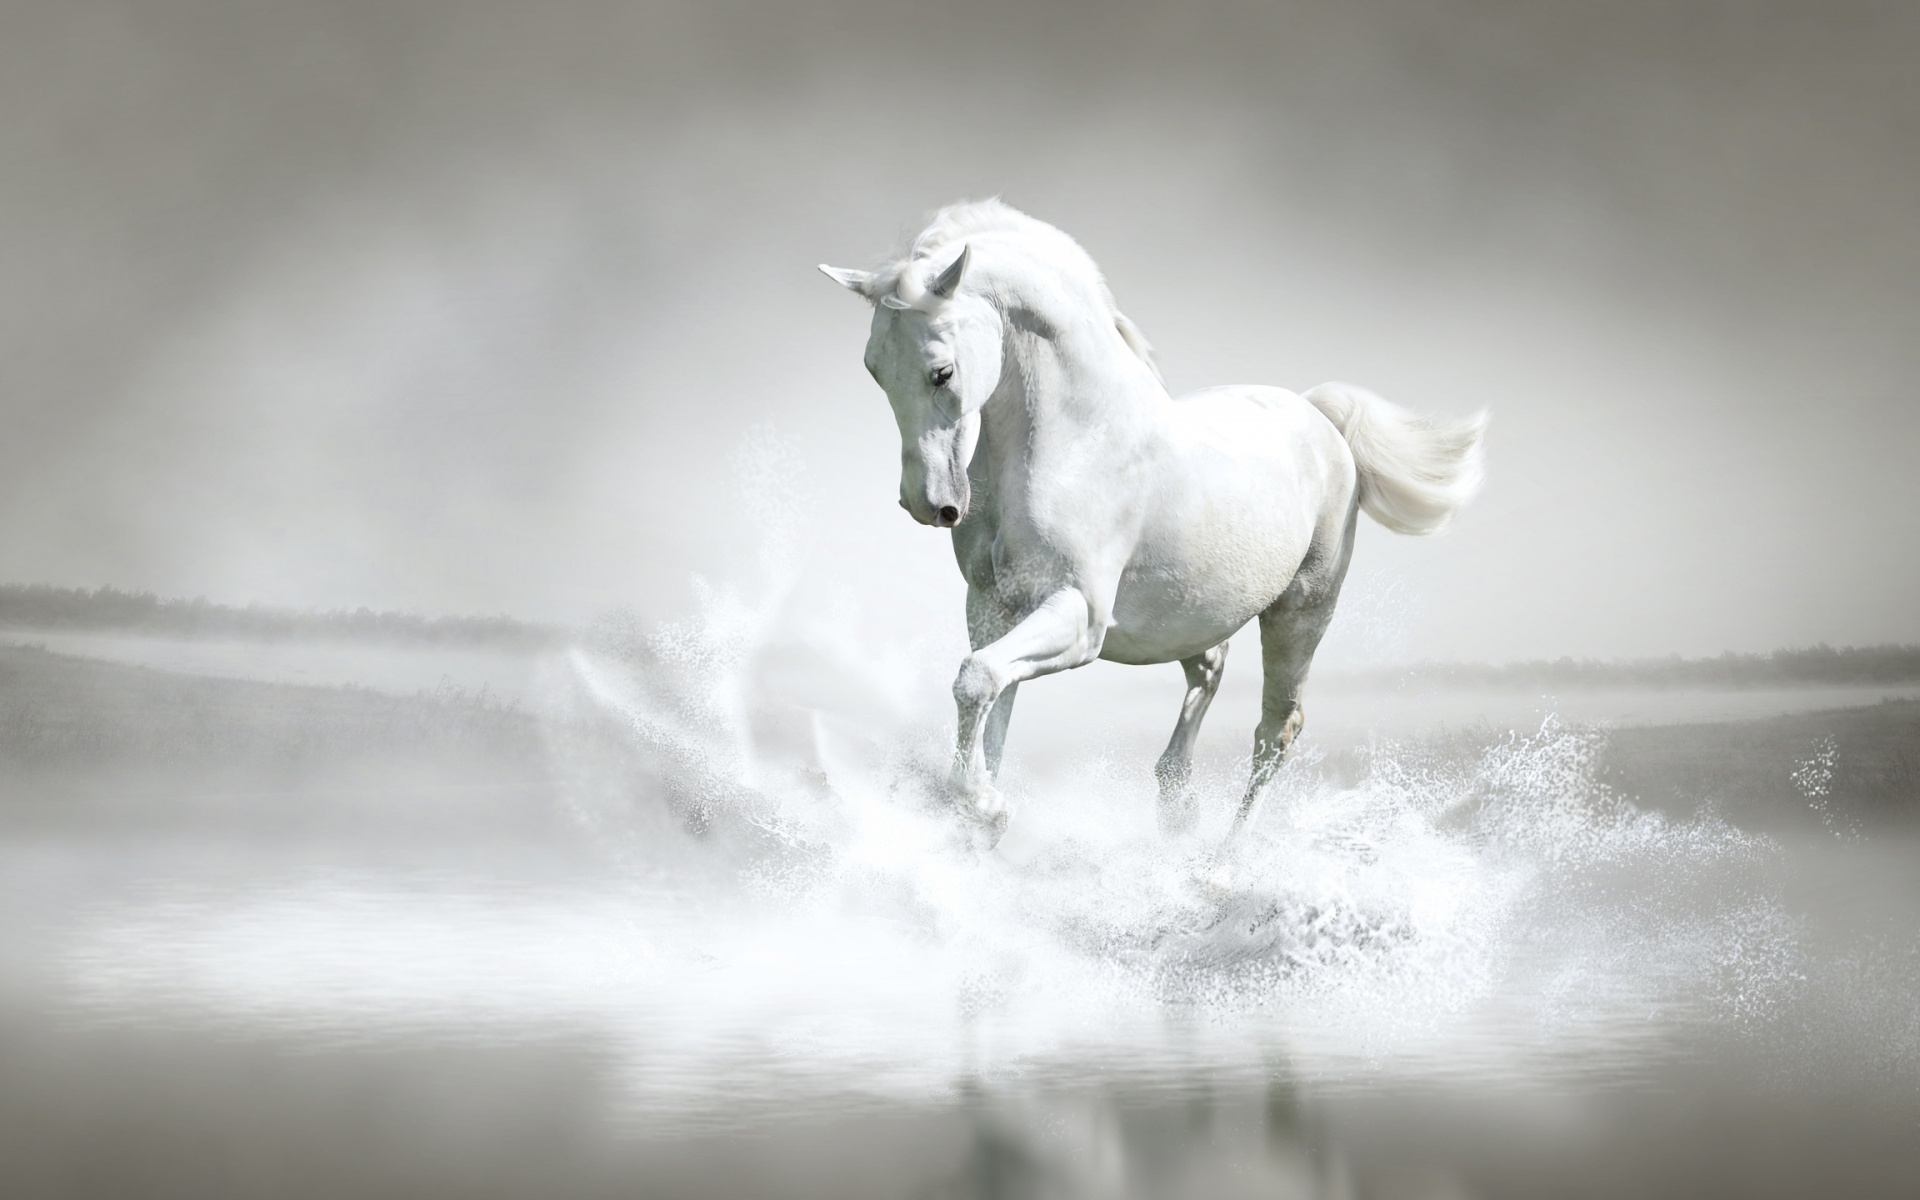 http://images6.fanpop.com/image/photos/35200000/White-Horse-horses-35203666-1920-1200.jpg